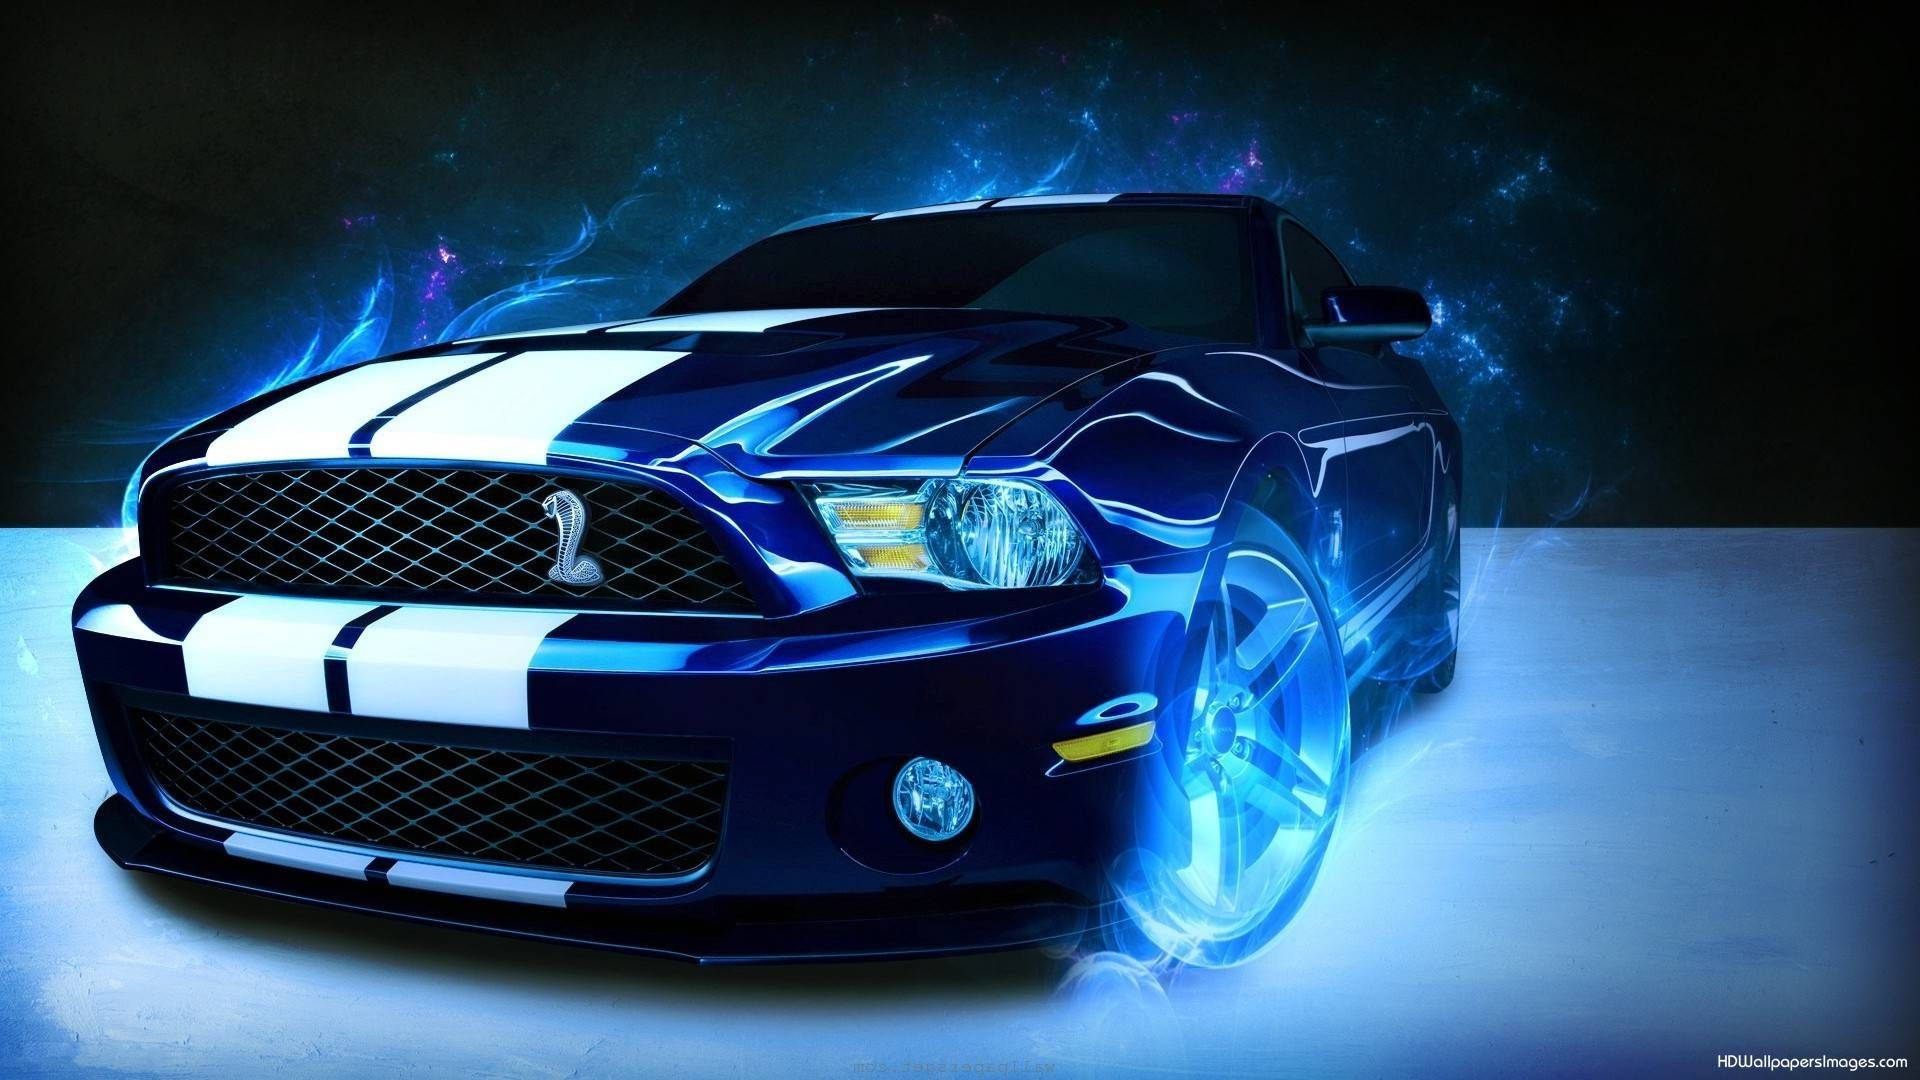 Sweet Ford Mustang 2014 Mustang Wallpaper Ford Mustang Wallpaper Ford Mustang